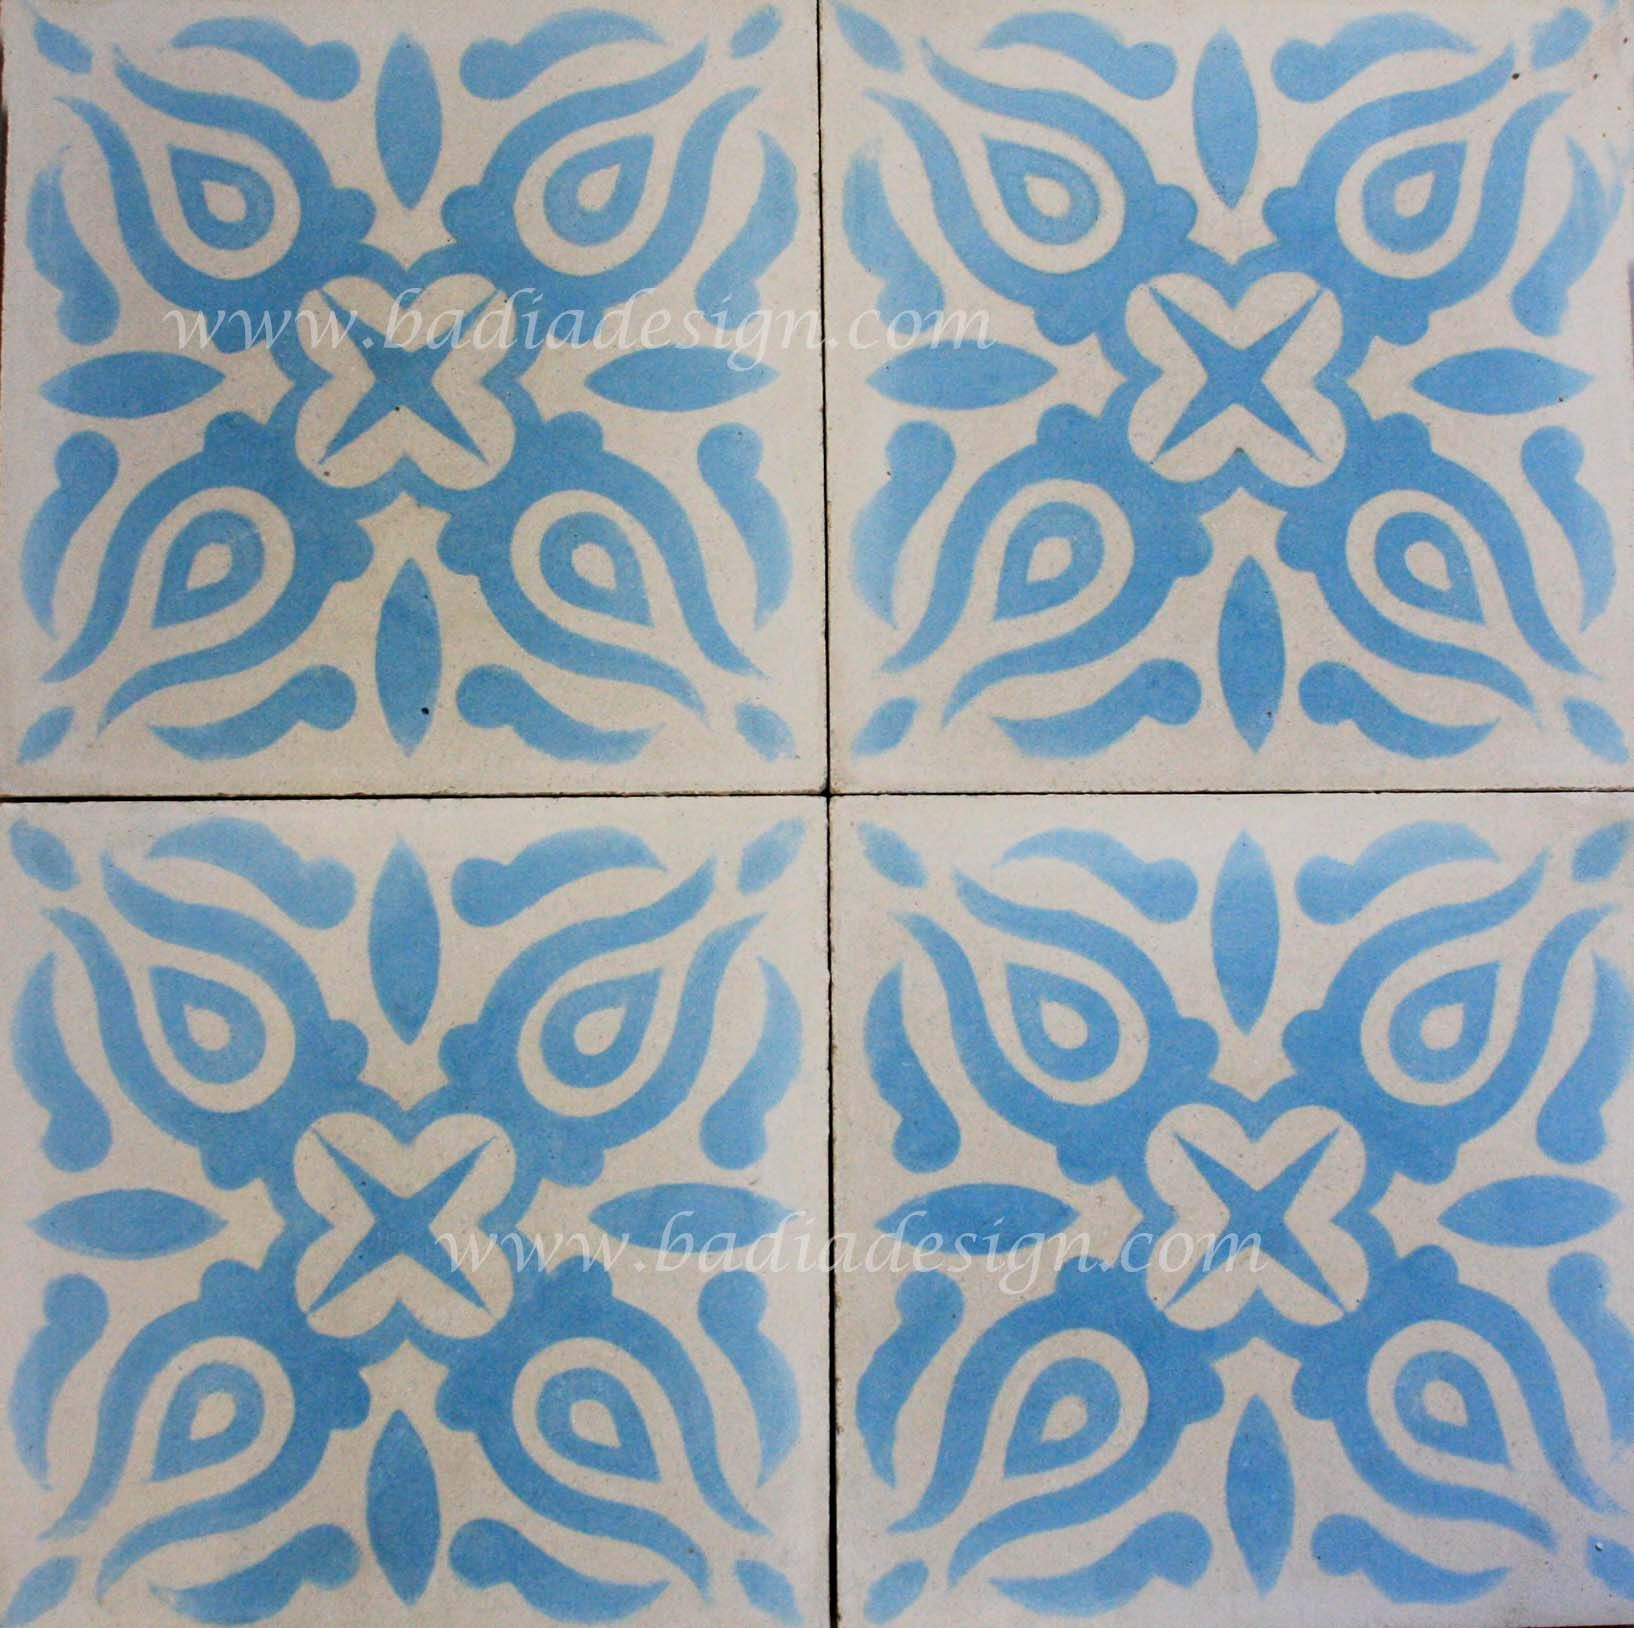 Beautiful 1200 X 600 Floor Tiles Small 16 Ceiling Tiles Clean 2 X 4 Ceiling Tile 2X2 Drop Ceiling Tiles Youthful 3 Tile Patterns For Floors Brown3D Ceramic Tiles Image Result For Moroccan Tiles | Tiles | Pinterest | Moroccan